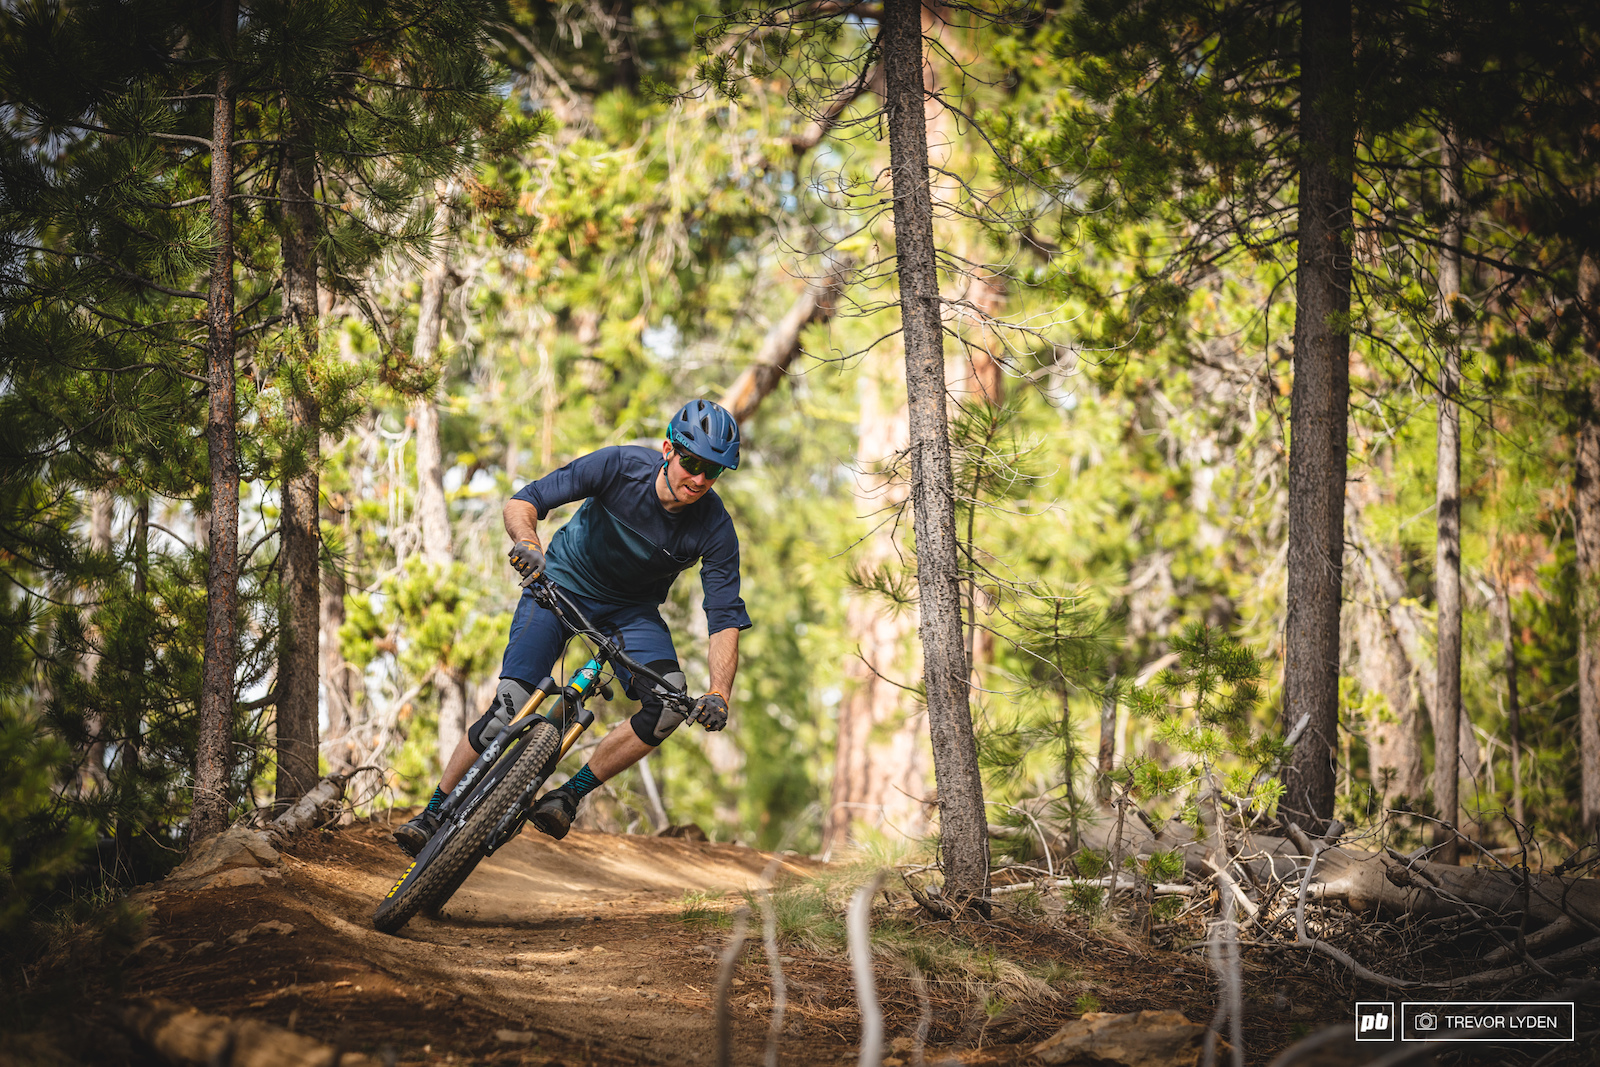 986bf1e9119 10 Men's Kits Tested - 2019 Summer Gear Guide - Pinkbike